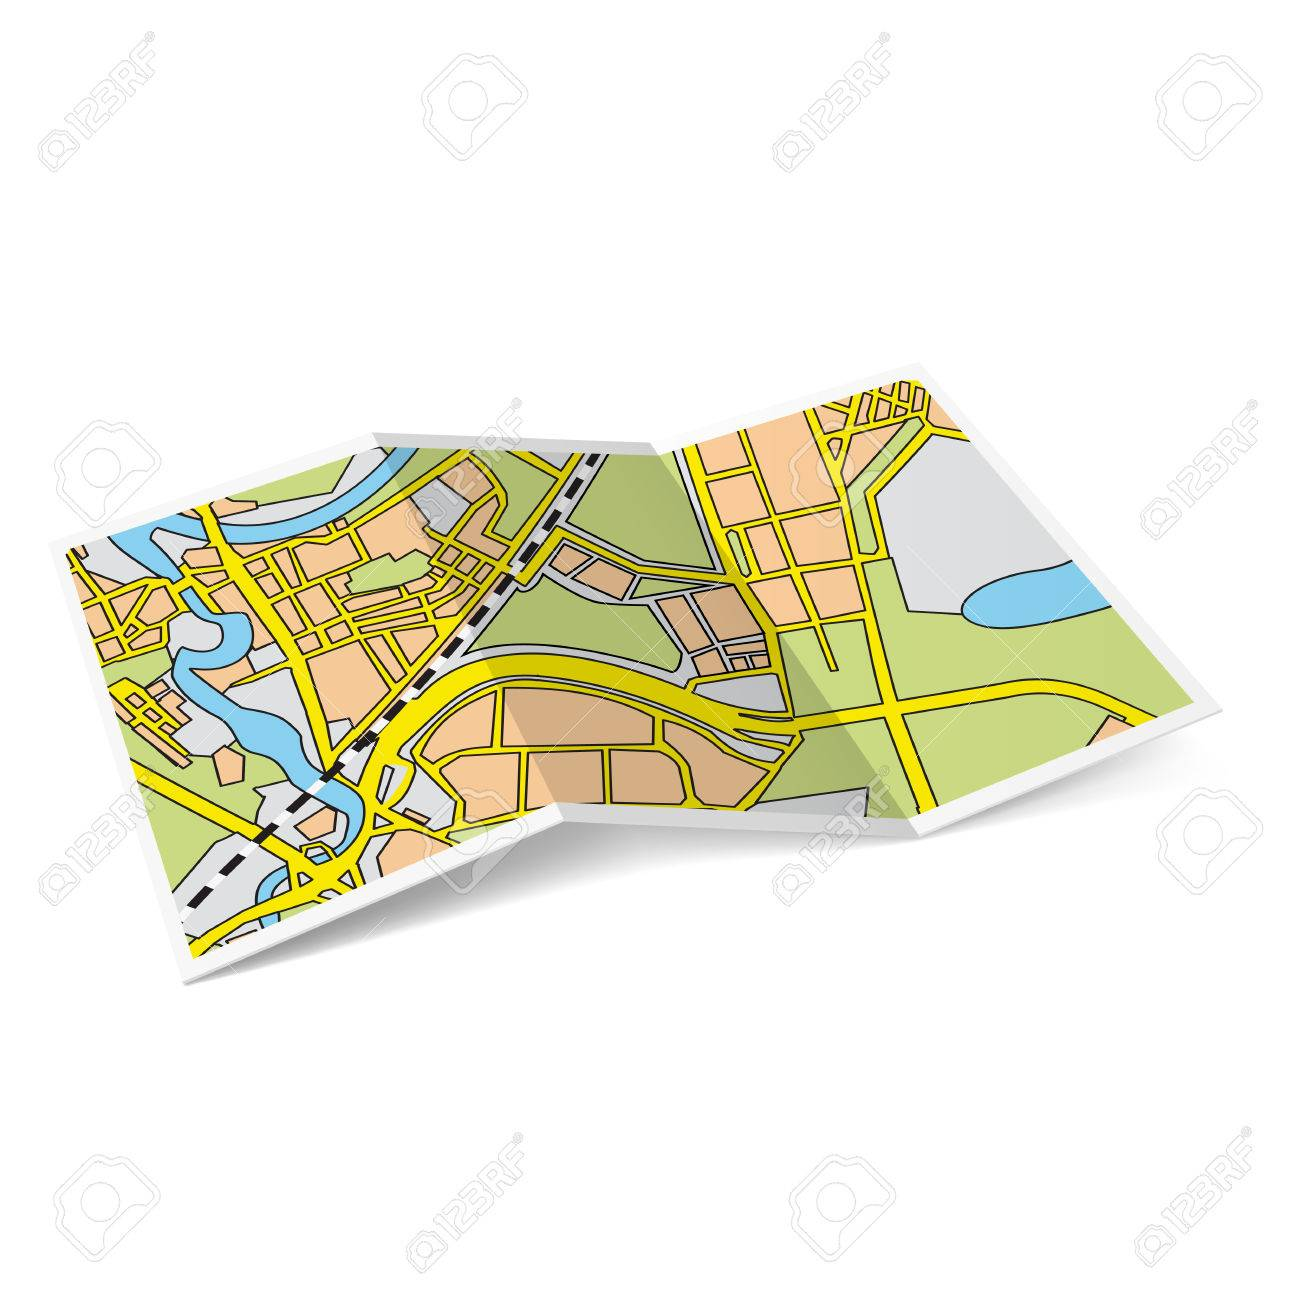 design of city map booklet on white background stock vector 25942926